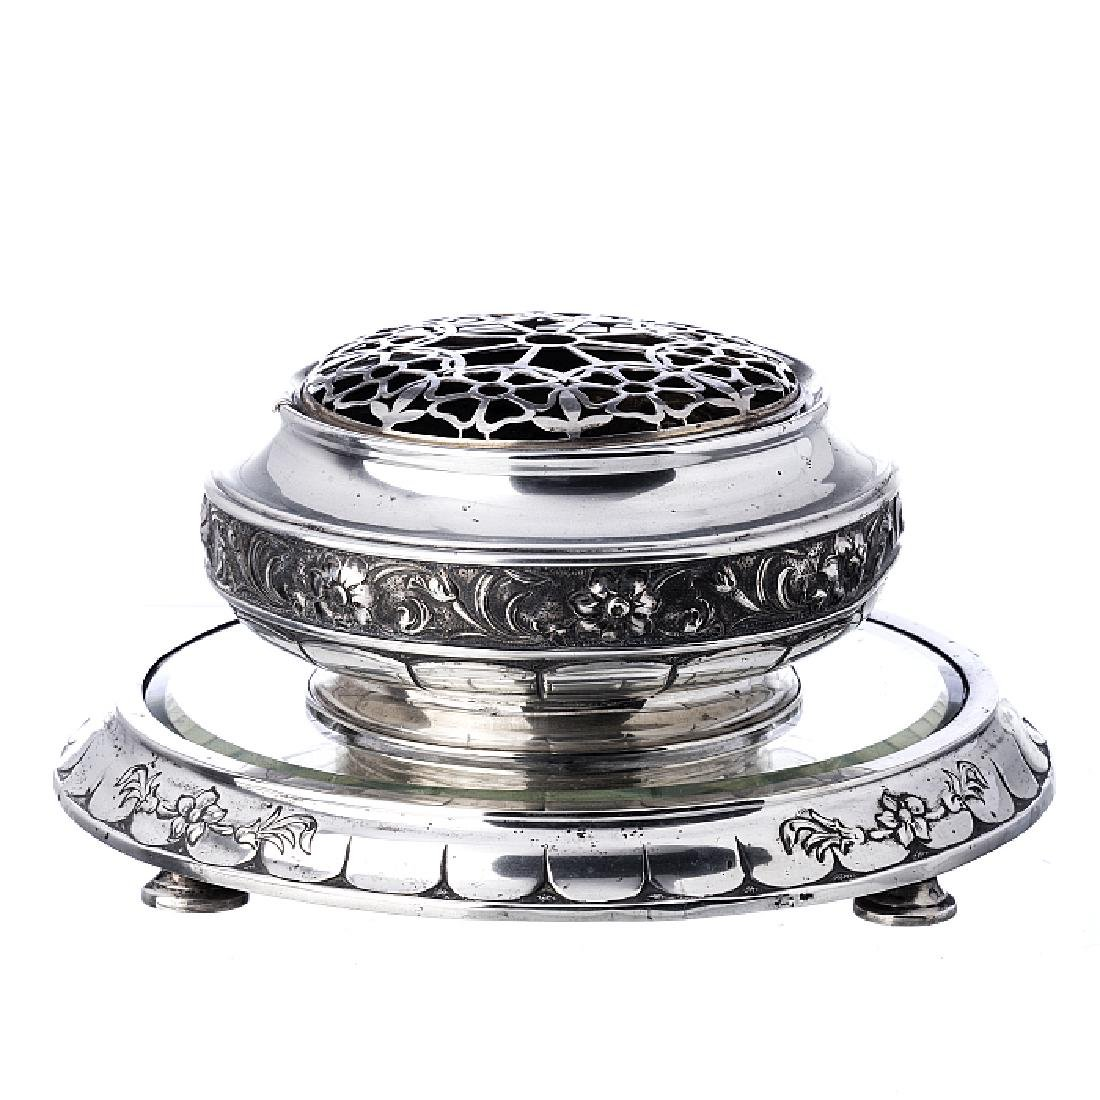 Art Deco centrepiece and stand in silver